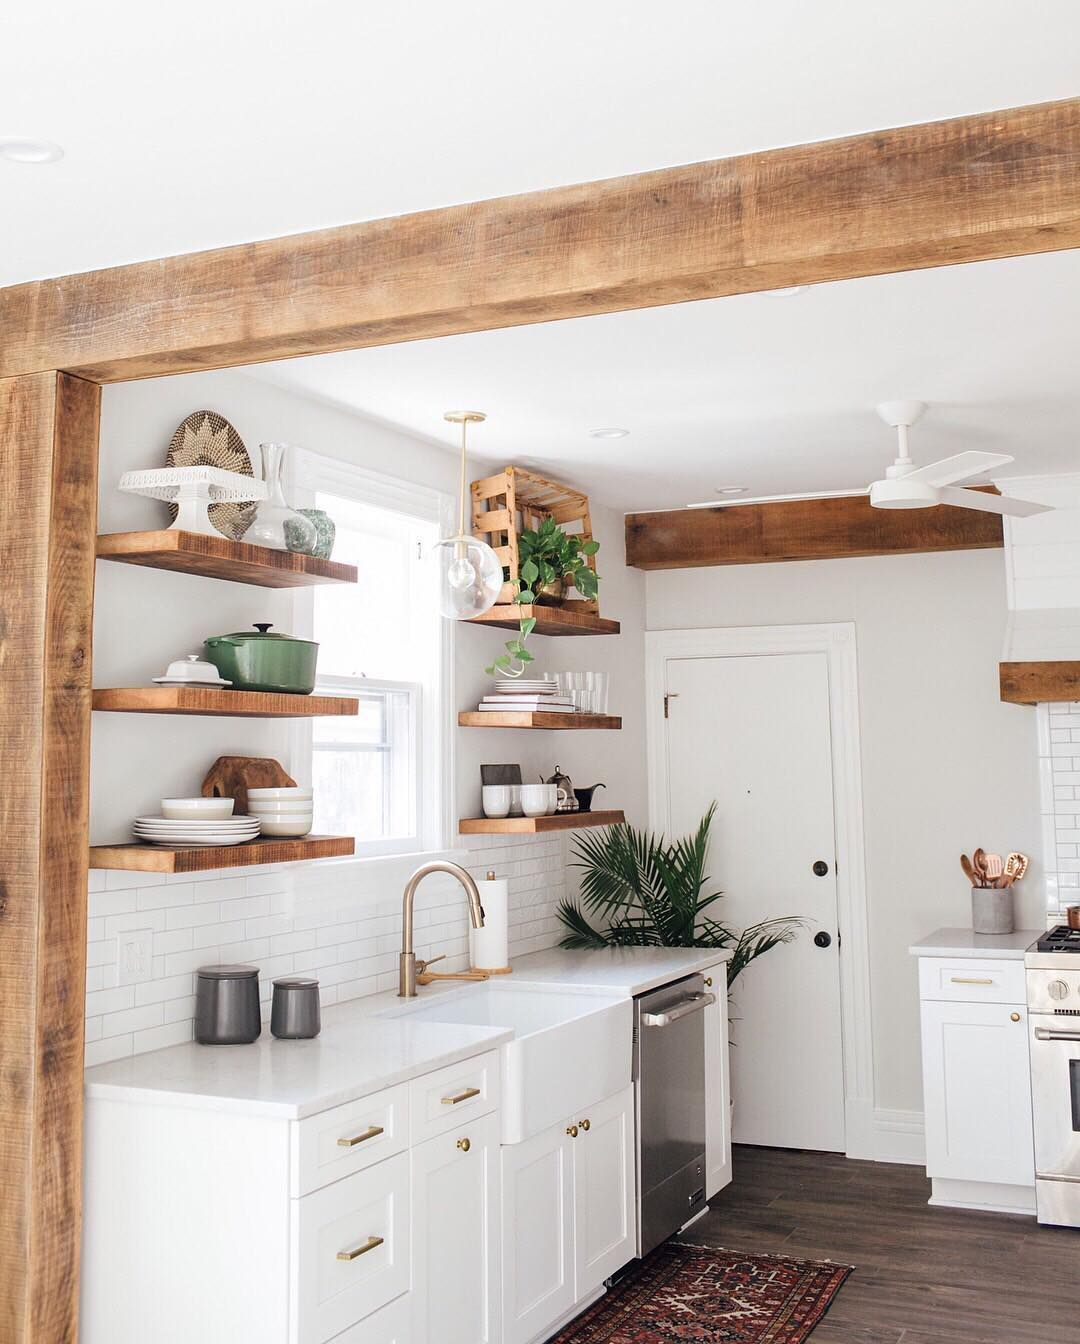 """Photo of Bedrosians Tile and Stone on Instagram: """"Such a pretty combination of bright white and warm wood tones in this kitchen designed by @contentandcompany / Get the look using Costa…"""""""